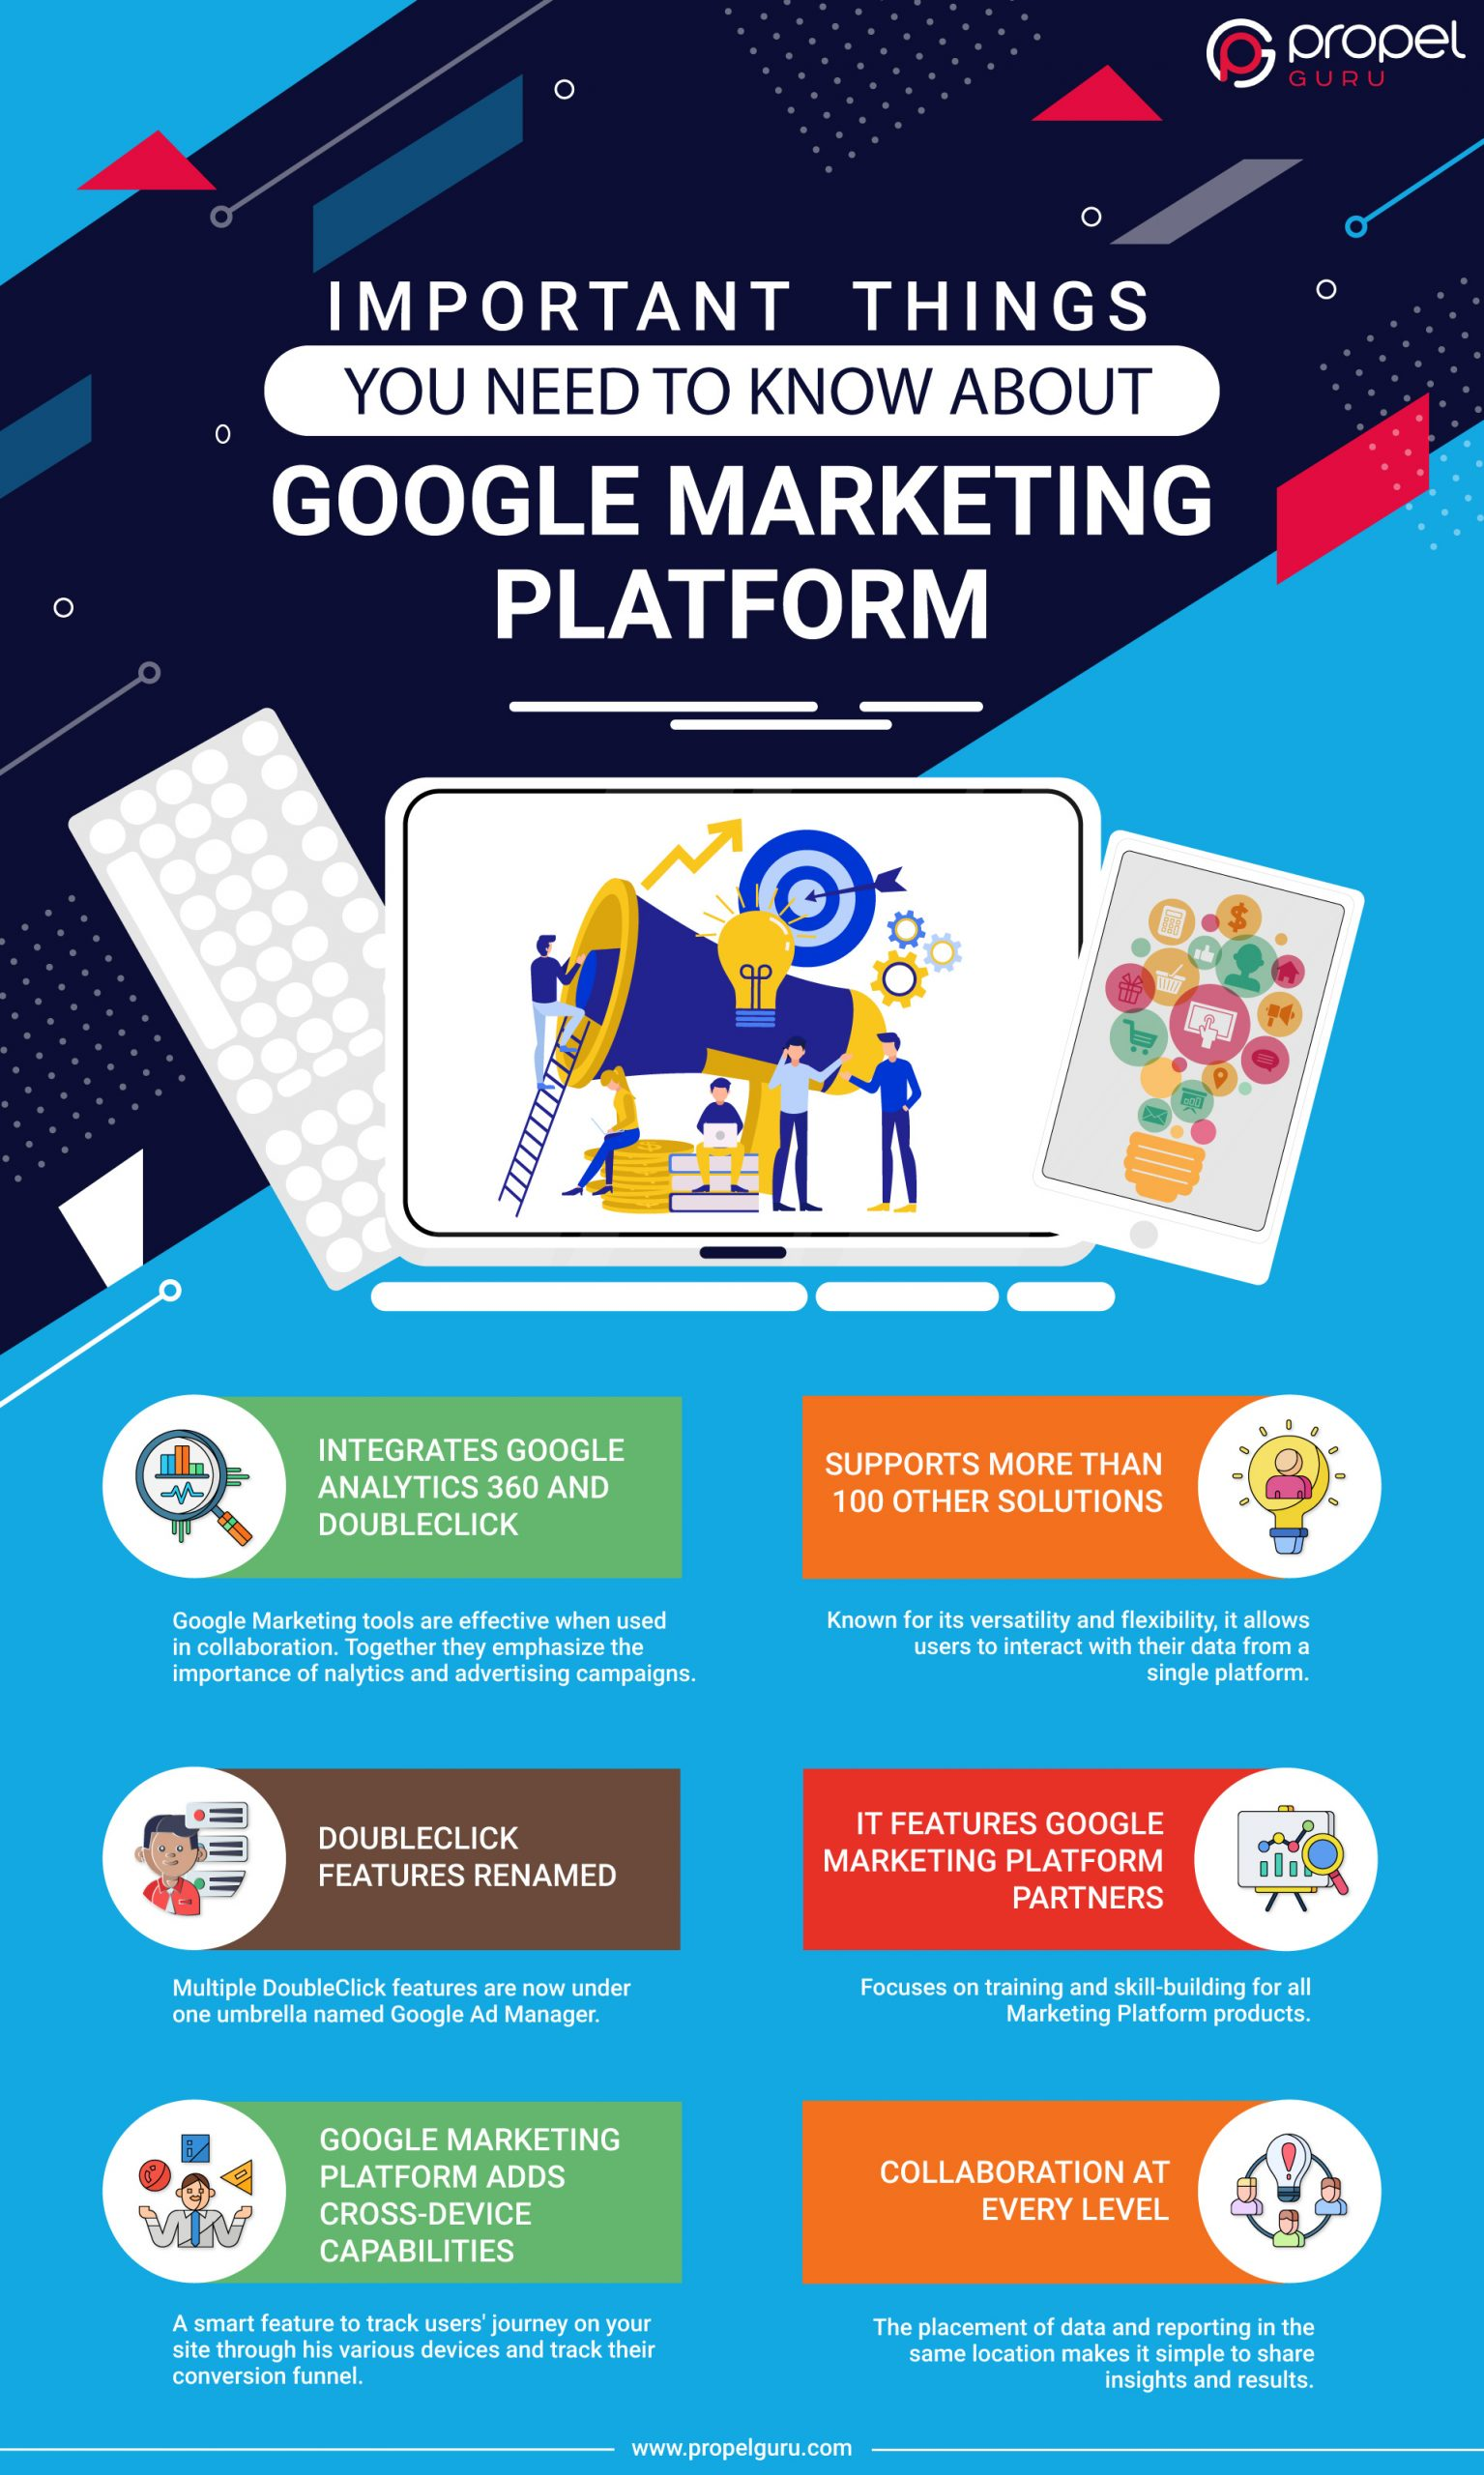 Important-Things-You-Need-to-Know-About-Google-Marketing-Platform